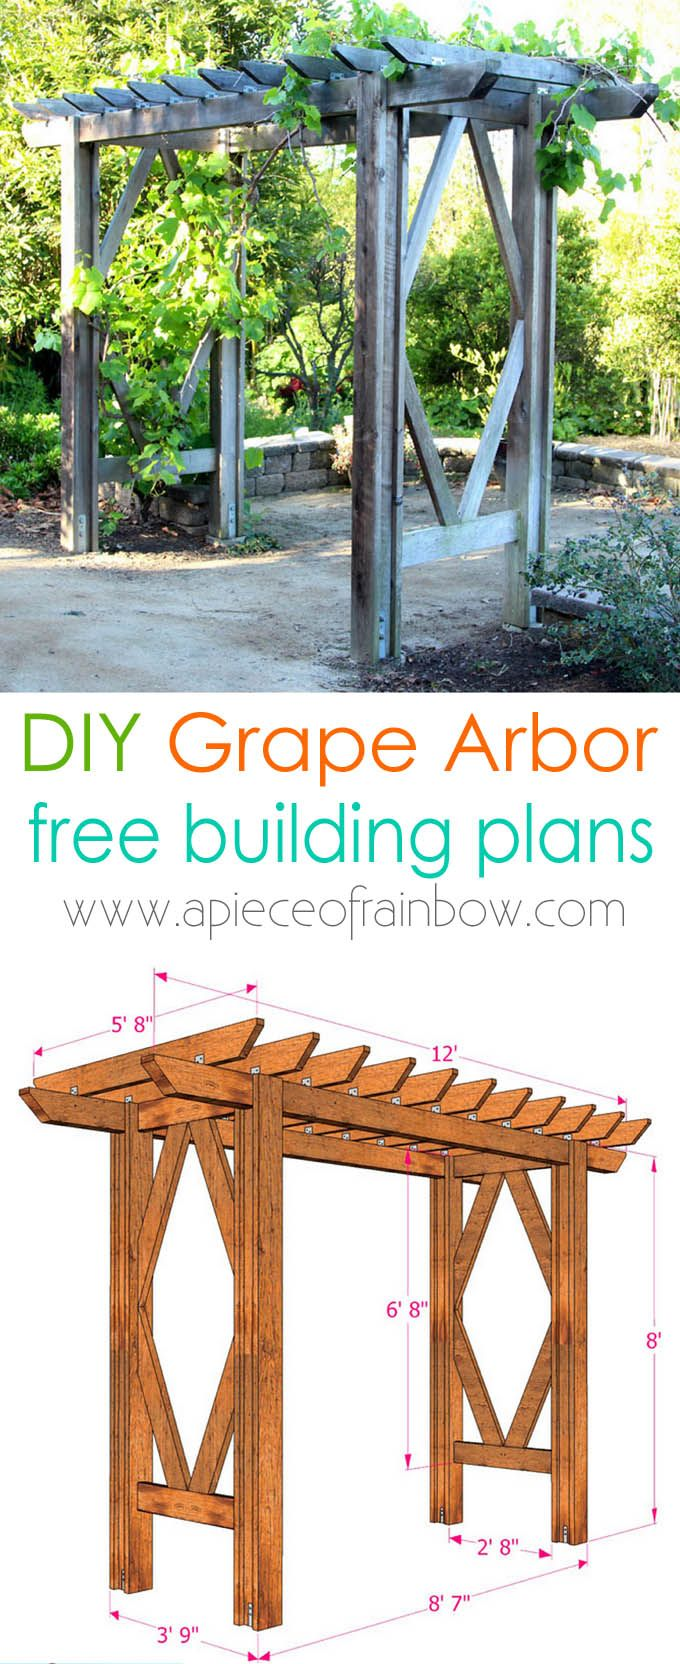 Free building plan for a gorgeous DIY friendly arbor pergola it